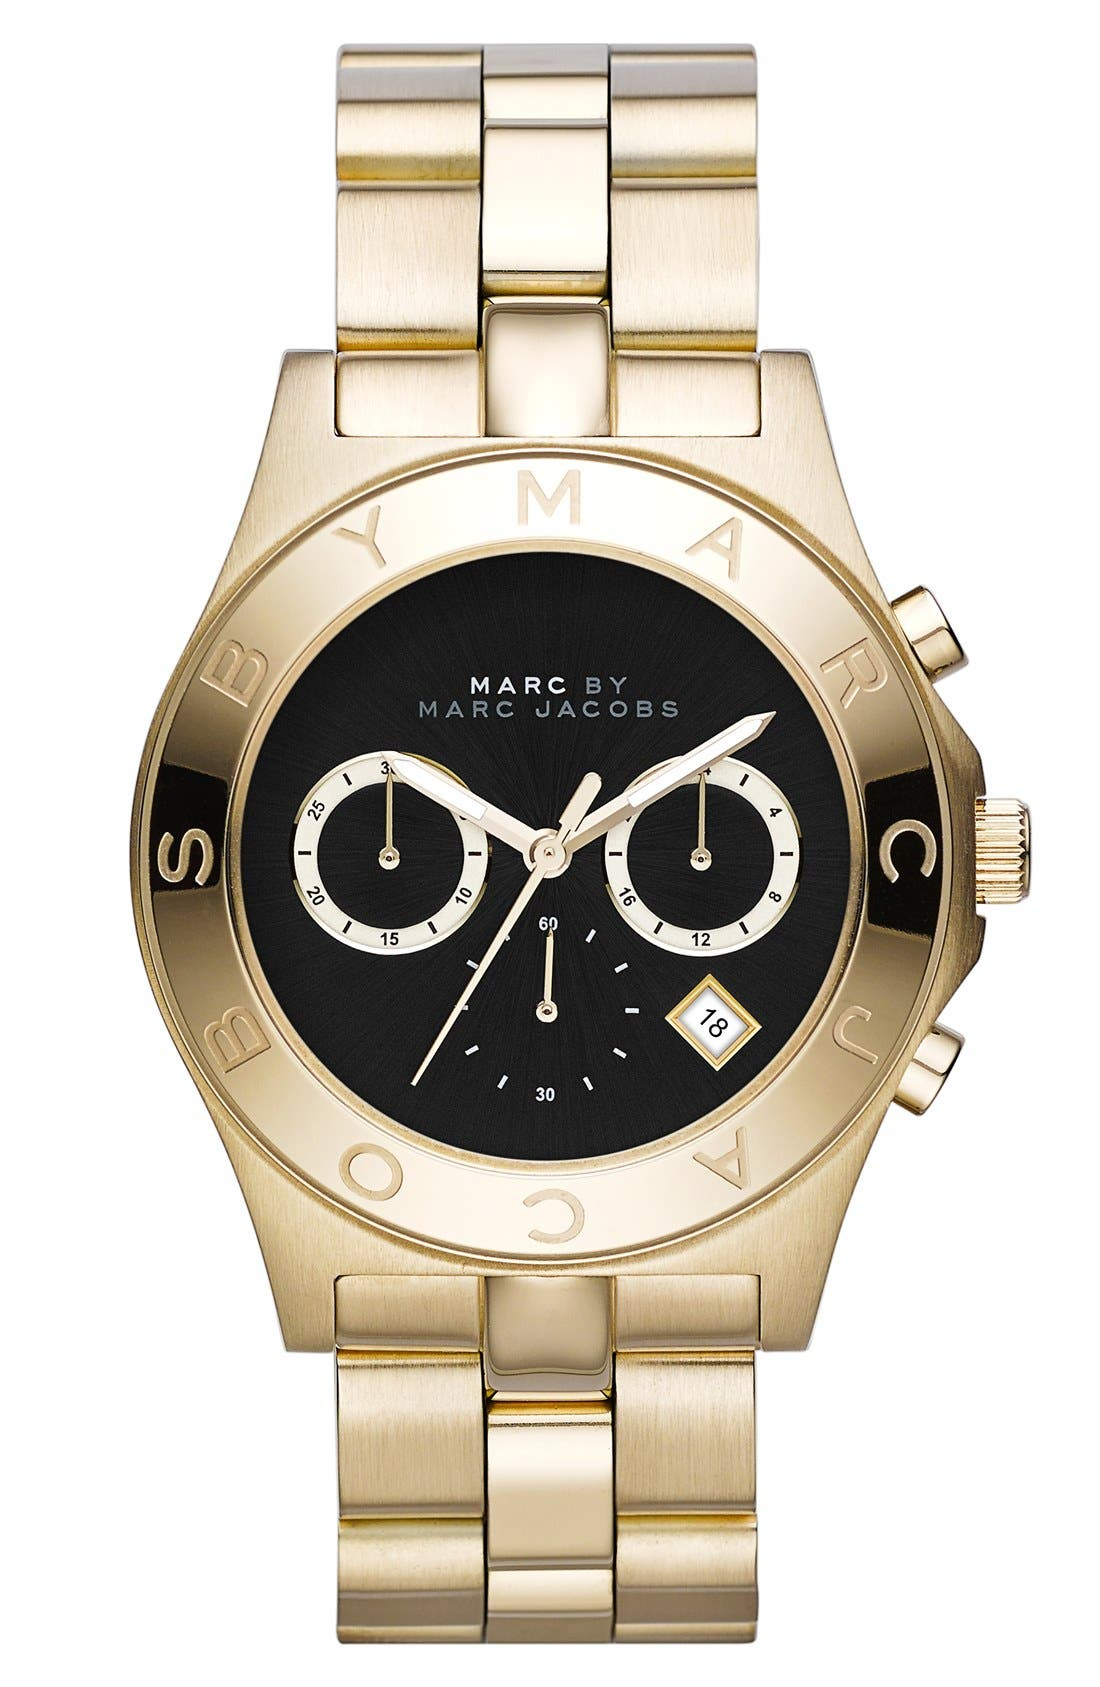 Main Image - MARC JACOBS 'Blade' Chronograph Bracelet Watch, 40mm